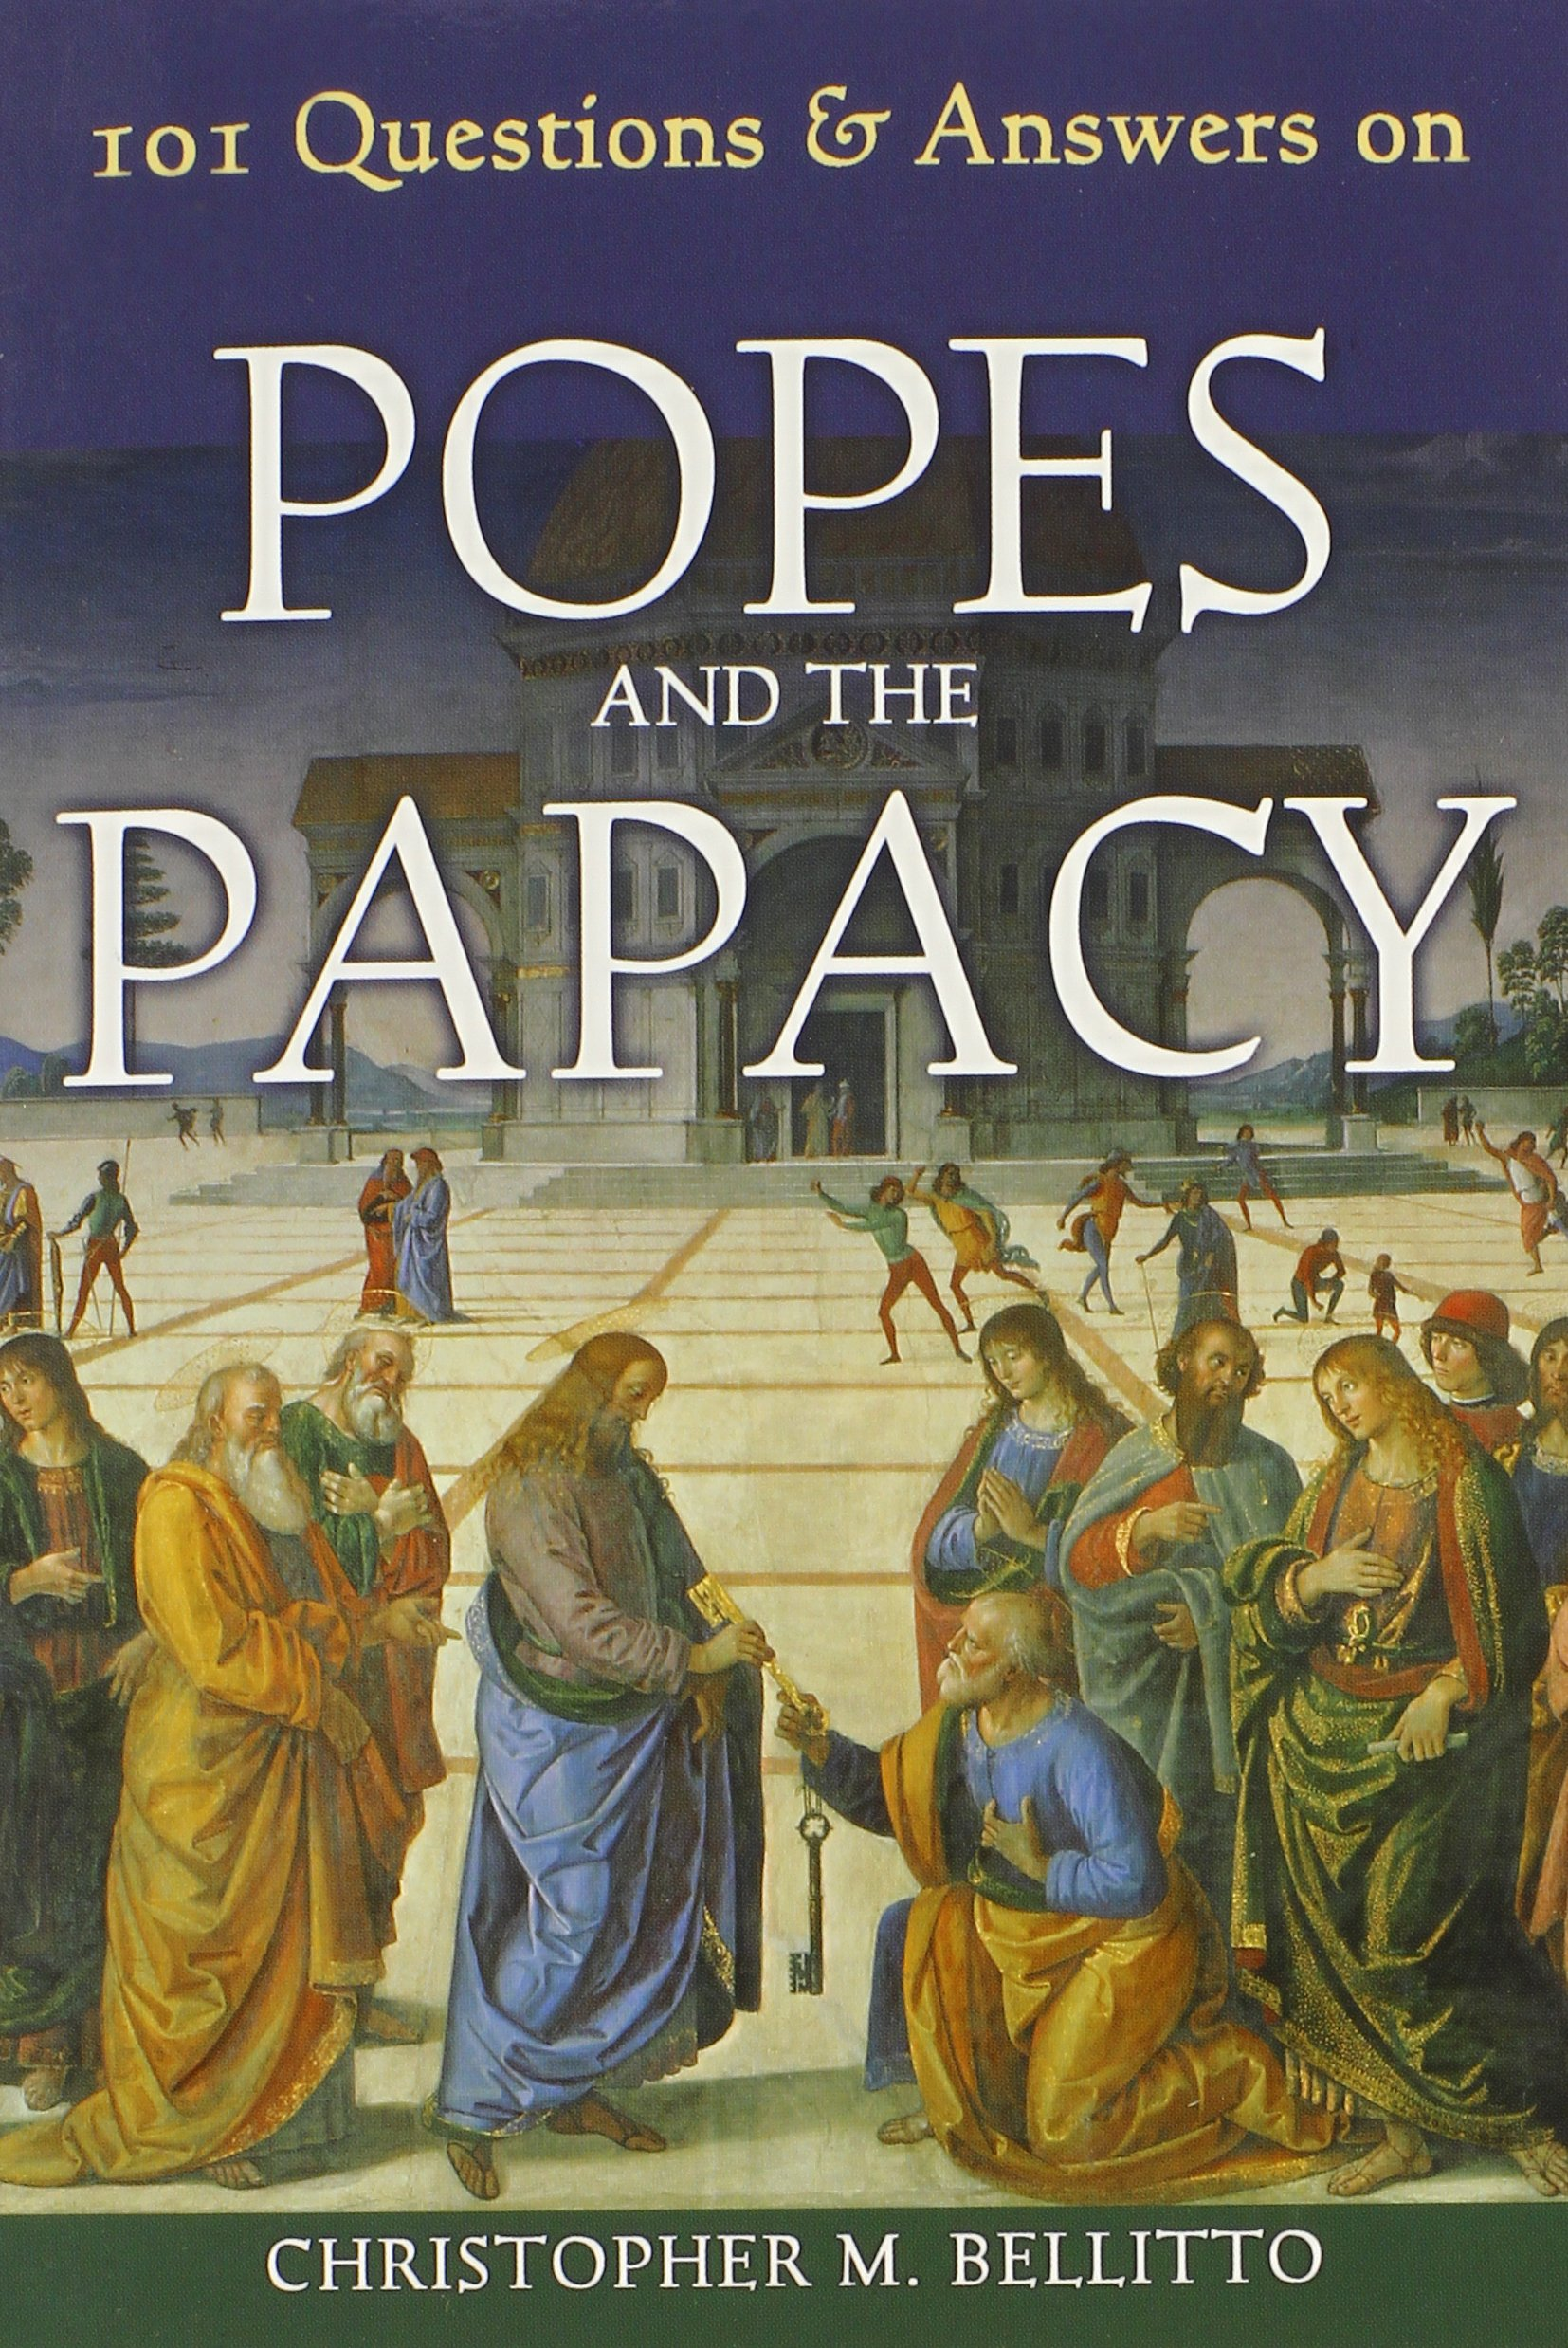 101 Questions & Answers on Popes and the Papacy: Christopher M Bellitto Dr  Ph.D.: 9780809145164: Amazon.com: Books